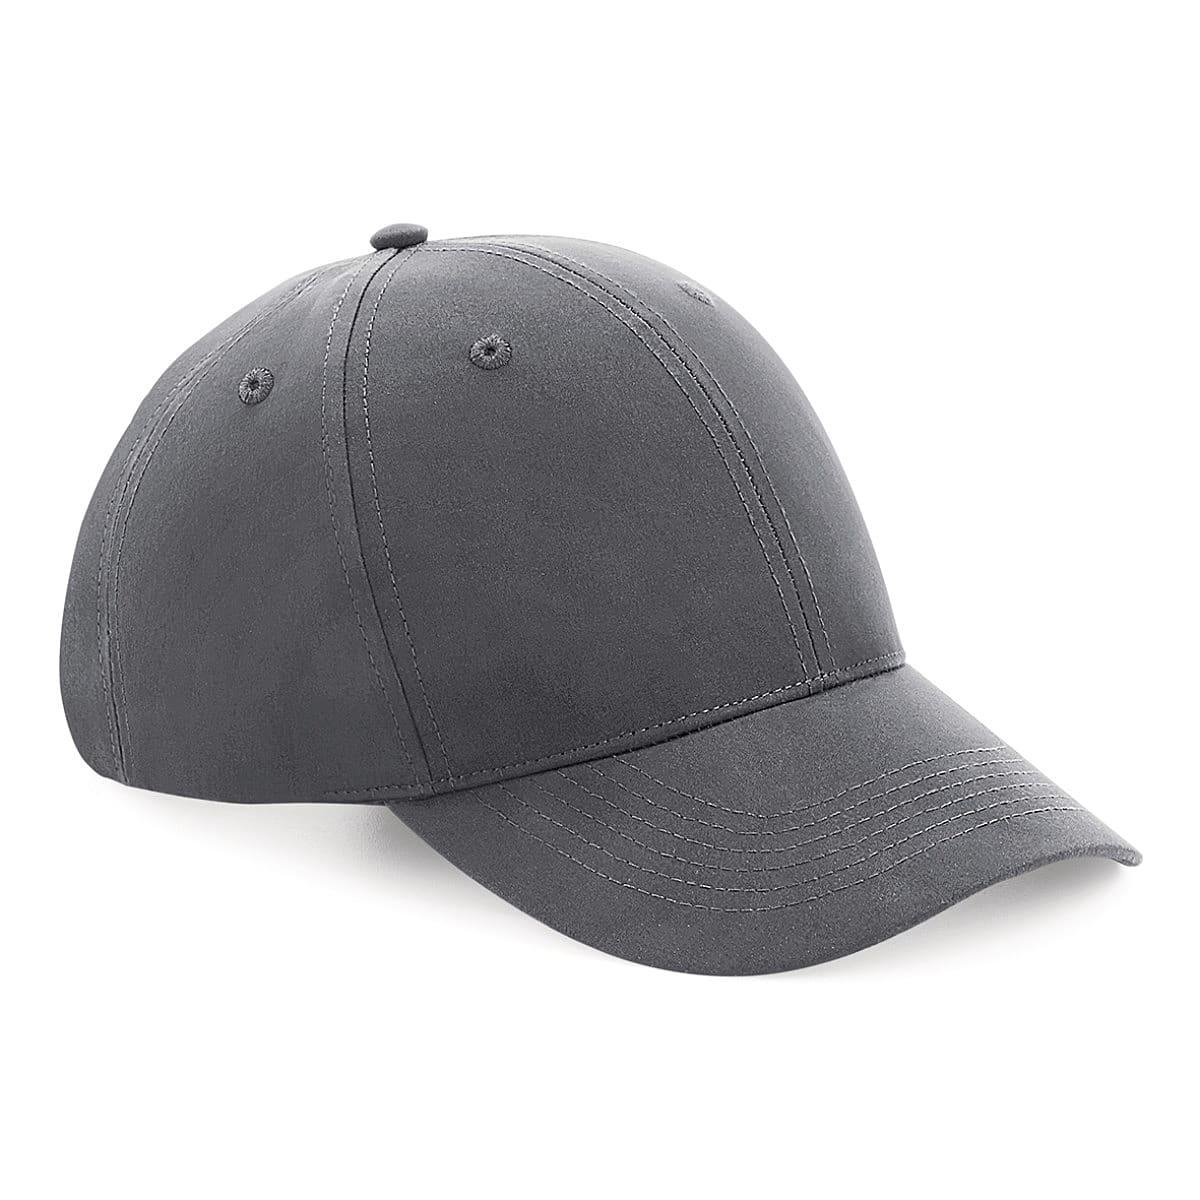 Beechfield Recycled Pro-Style Cap in Graphite (Product Code: B70)